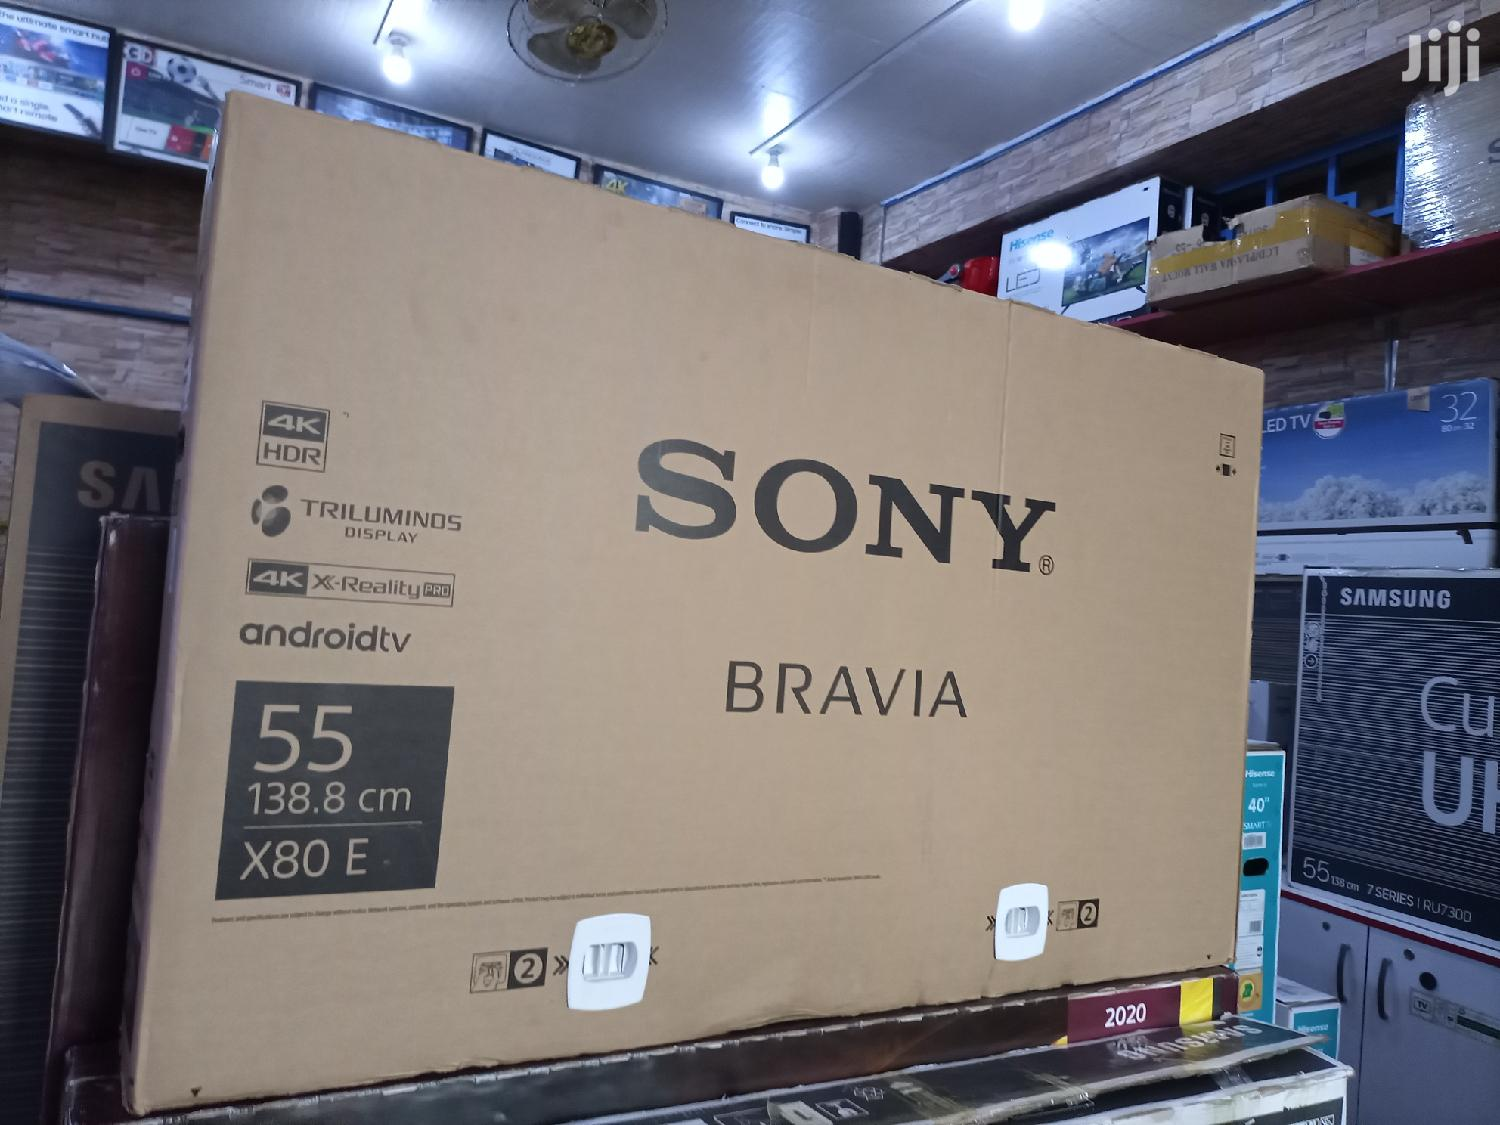 New Sony Bravia Smart Ultra Hd Android Flat Screen TV 55 Inches | TV & DVD Equipment for sale in Kampala, Central Region, Uganda